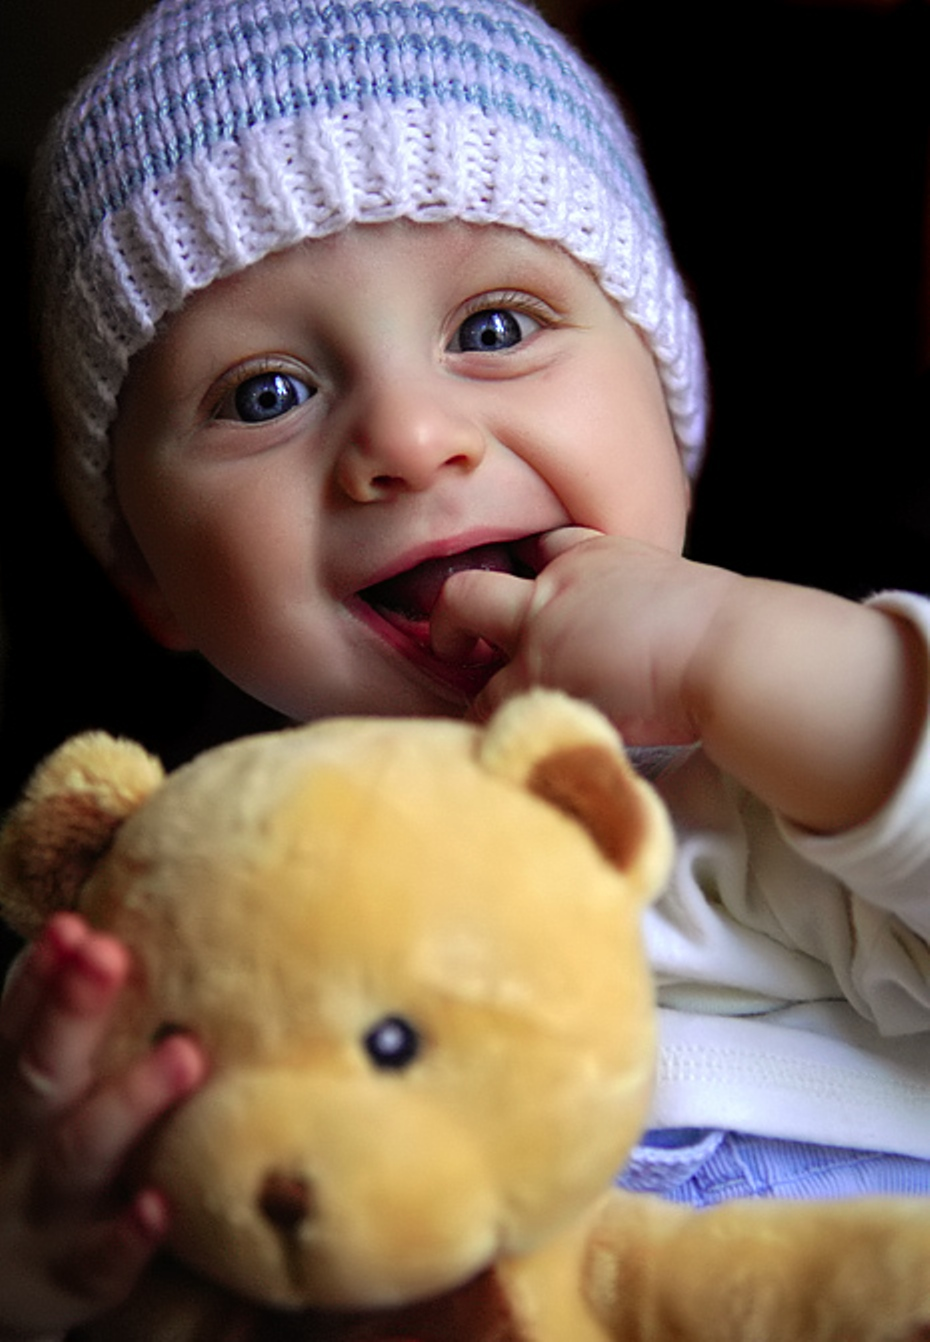 Funny Babies Pictures Images amp Photos  Photobucket